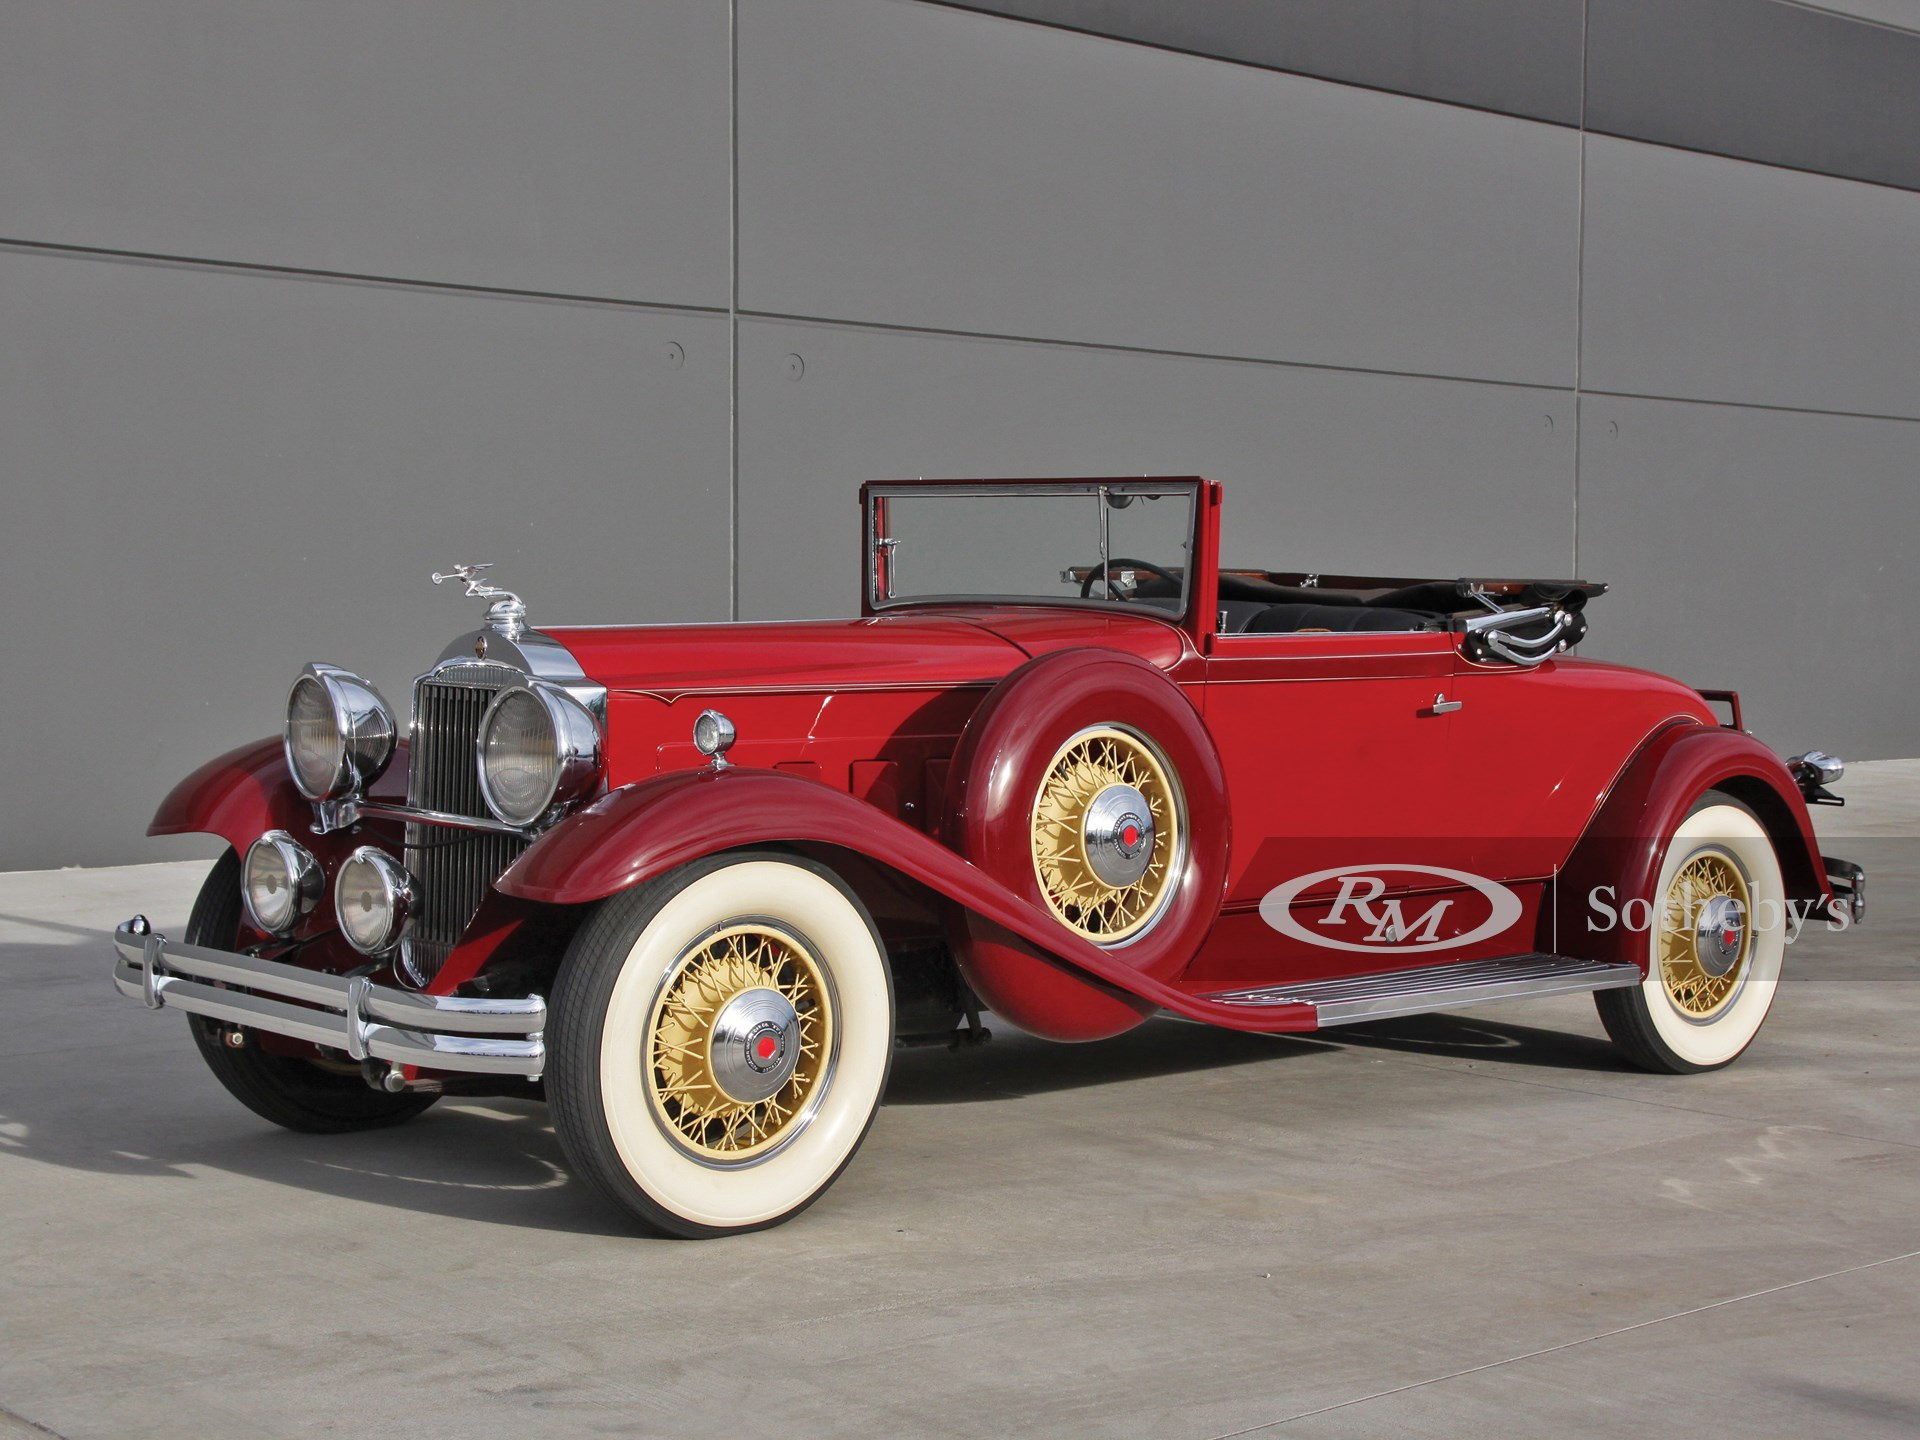 1931 Packard Deluxe Eight Convertible Coupe